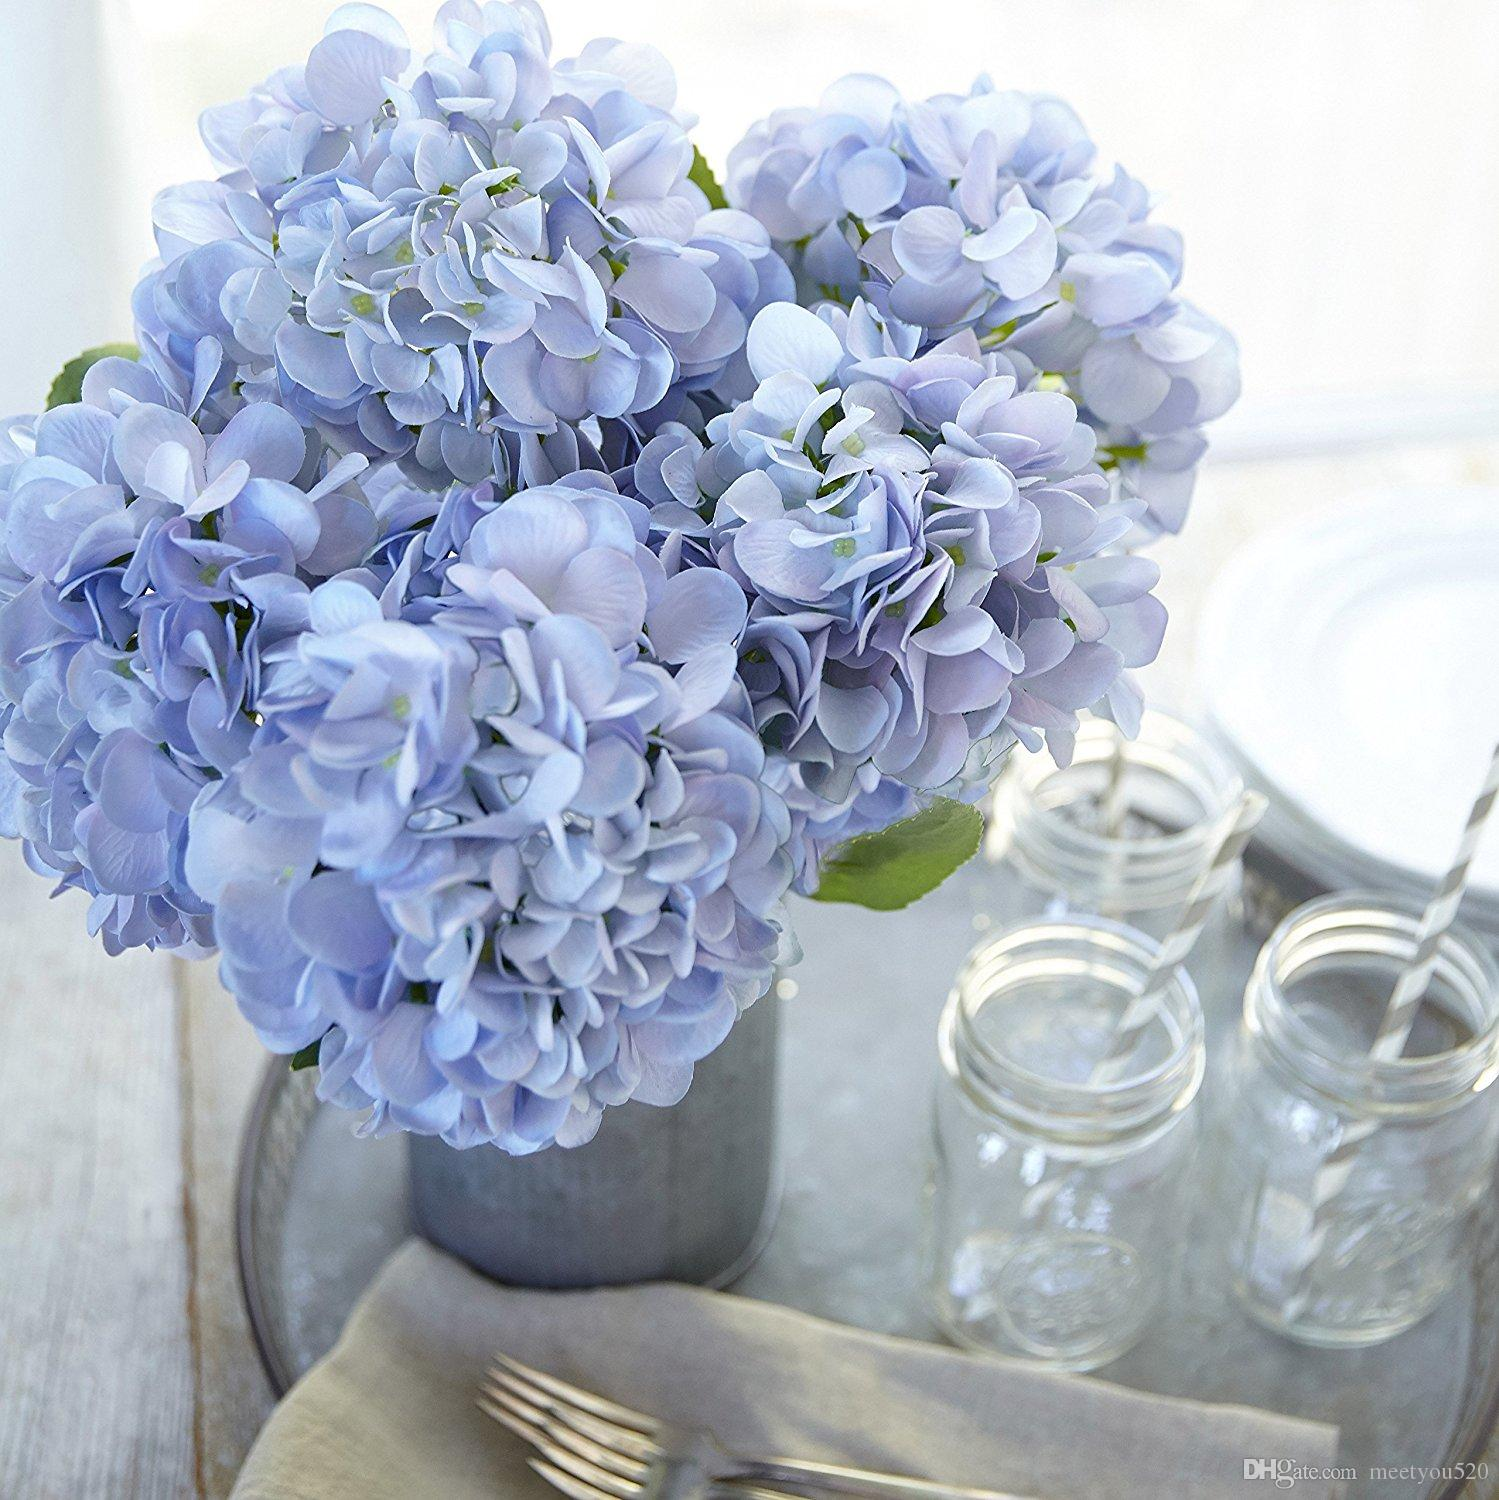 2018 artificial hydrangea silk flowers for wedding bouquet flower 2018 artificial hydrangea silk flowers for wedding bouquet flower arrangements blue color 5 stems bundle from meetyou520 2758 dhgate izmirmasajfo